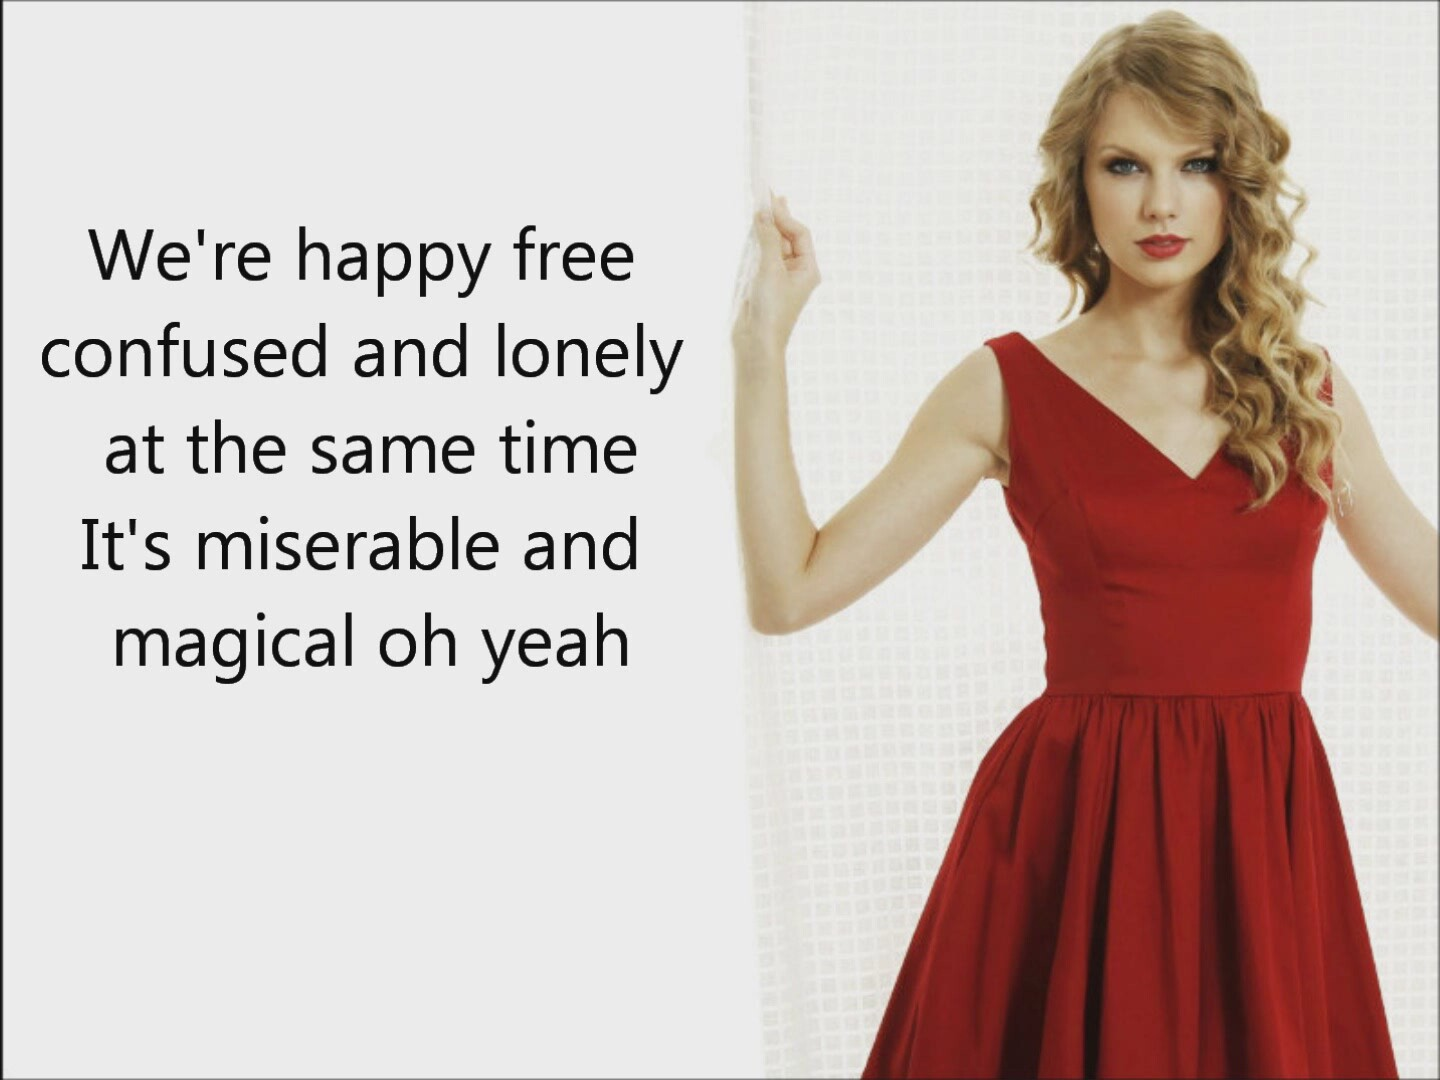 taylor swift 22 lyrics İzlesenecom